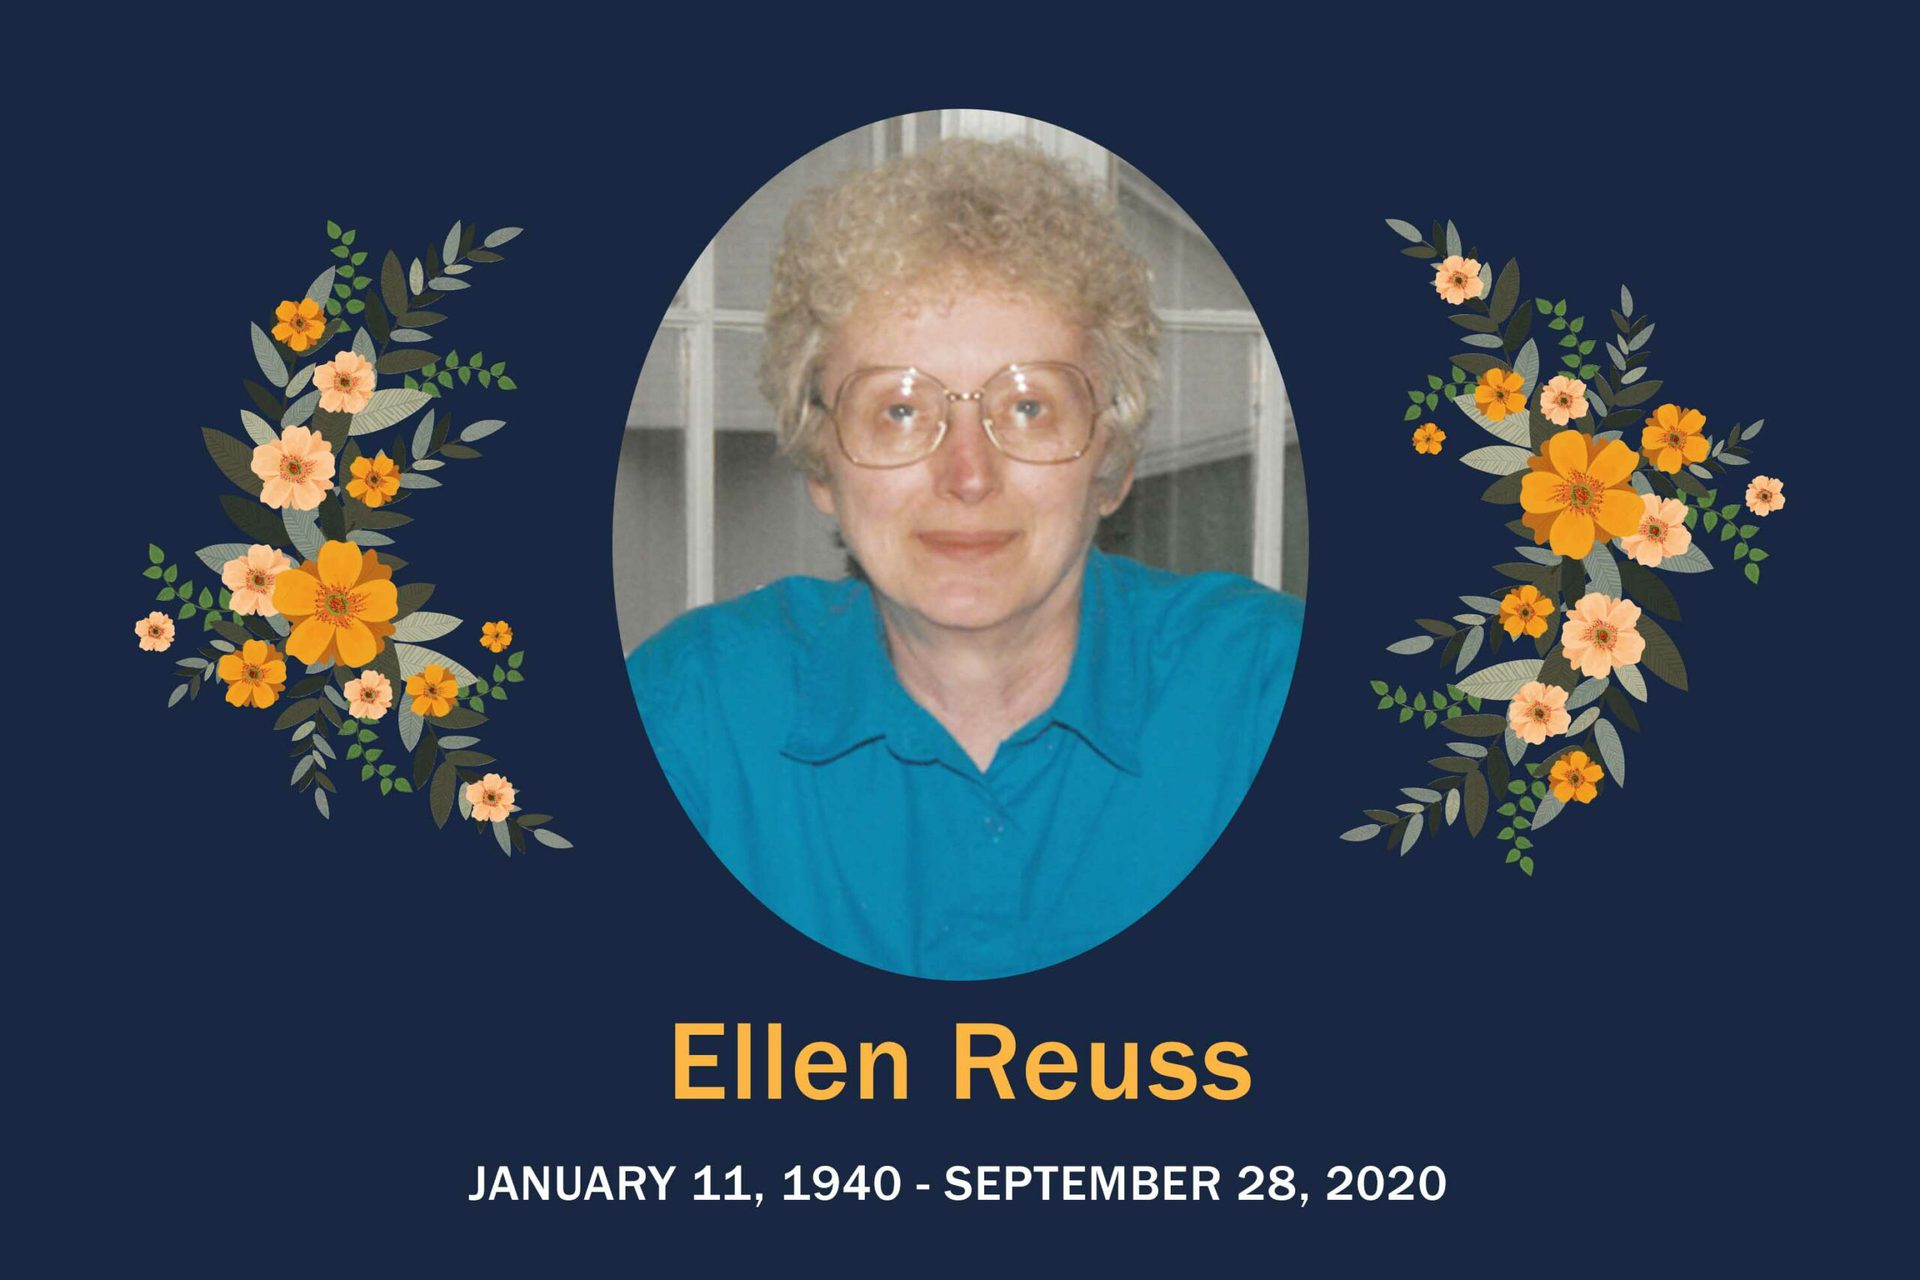 Obituary Ellen Reuss